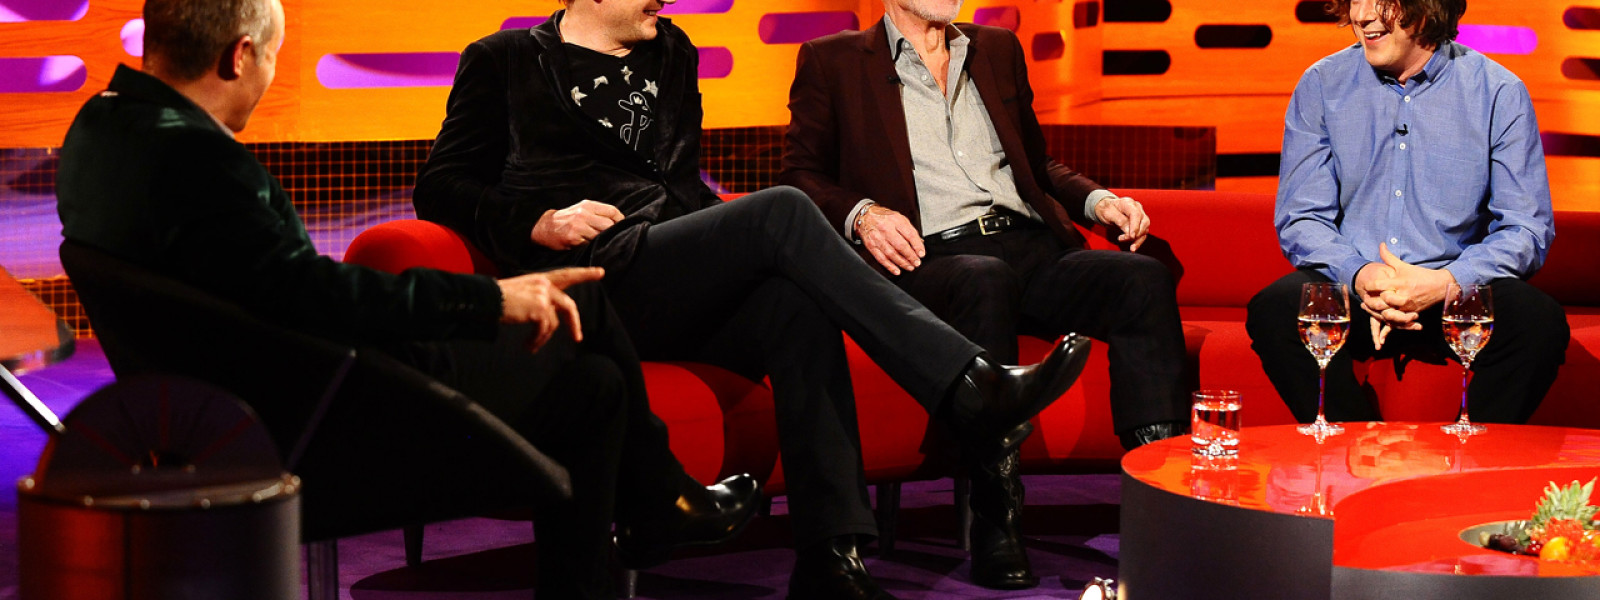 thegrahamnortonshow_photo_s10_e12_03_web